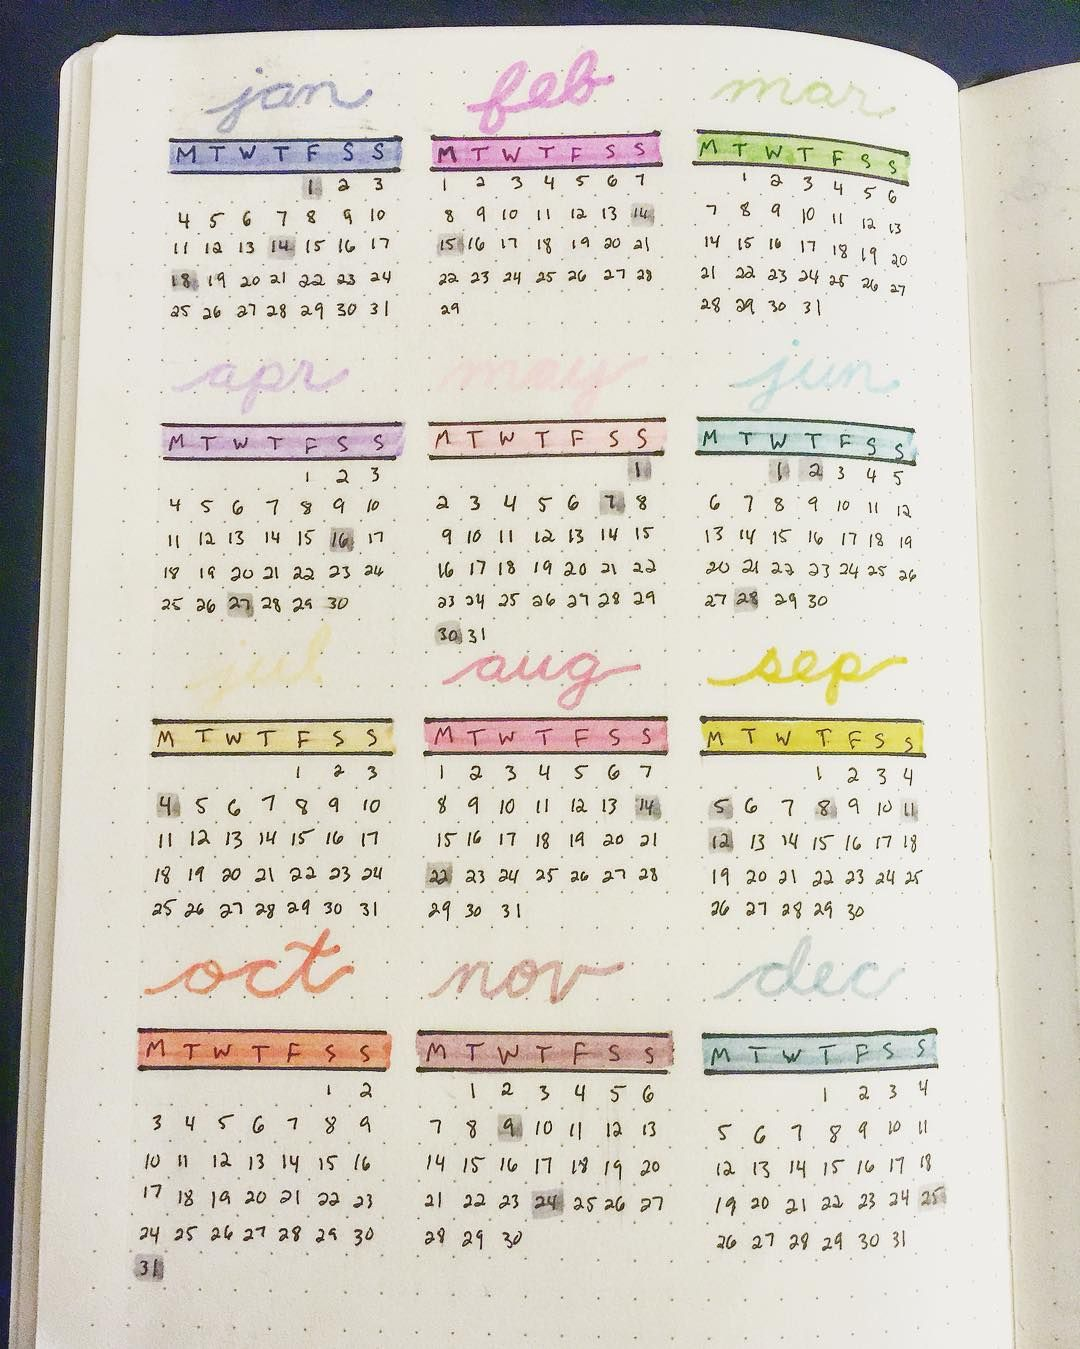 Finally Got Around To Making A Yearly Calendar Layout In My Bullet